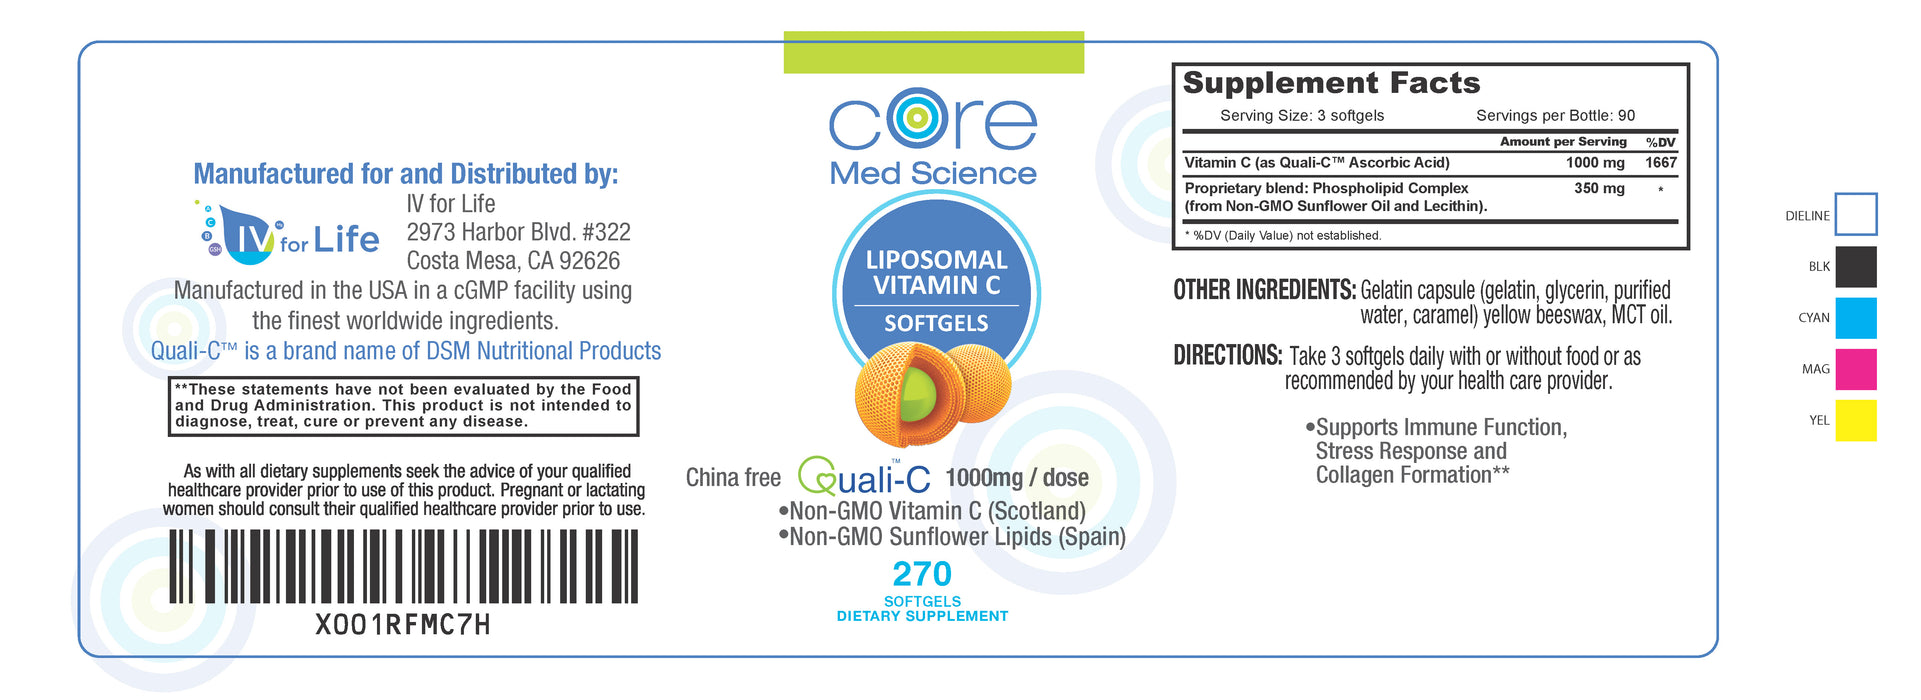 Liposomal Vitamin C Softgels 3 MONTH Supply – Quali®-C Vitamin C from Scotland – Non-GMO – USA Made – cGMP - 270 softgels, 90 Servings of 1000mg